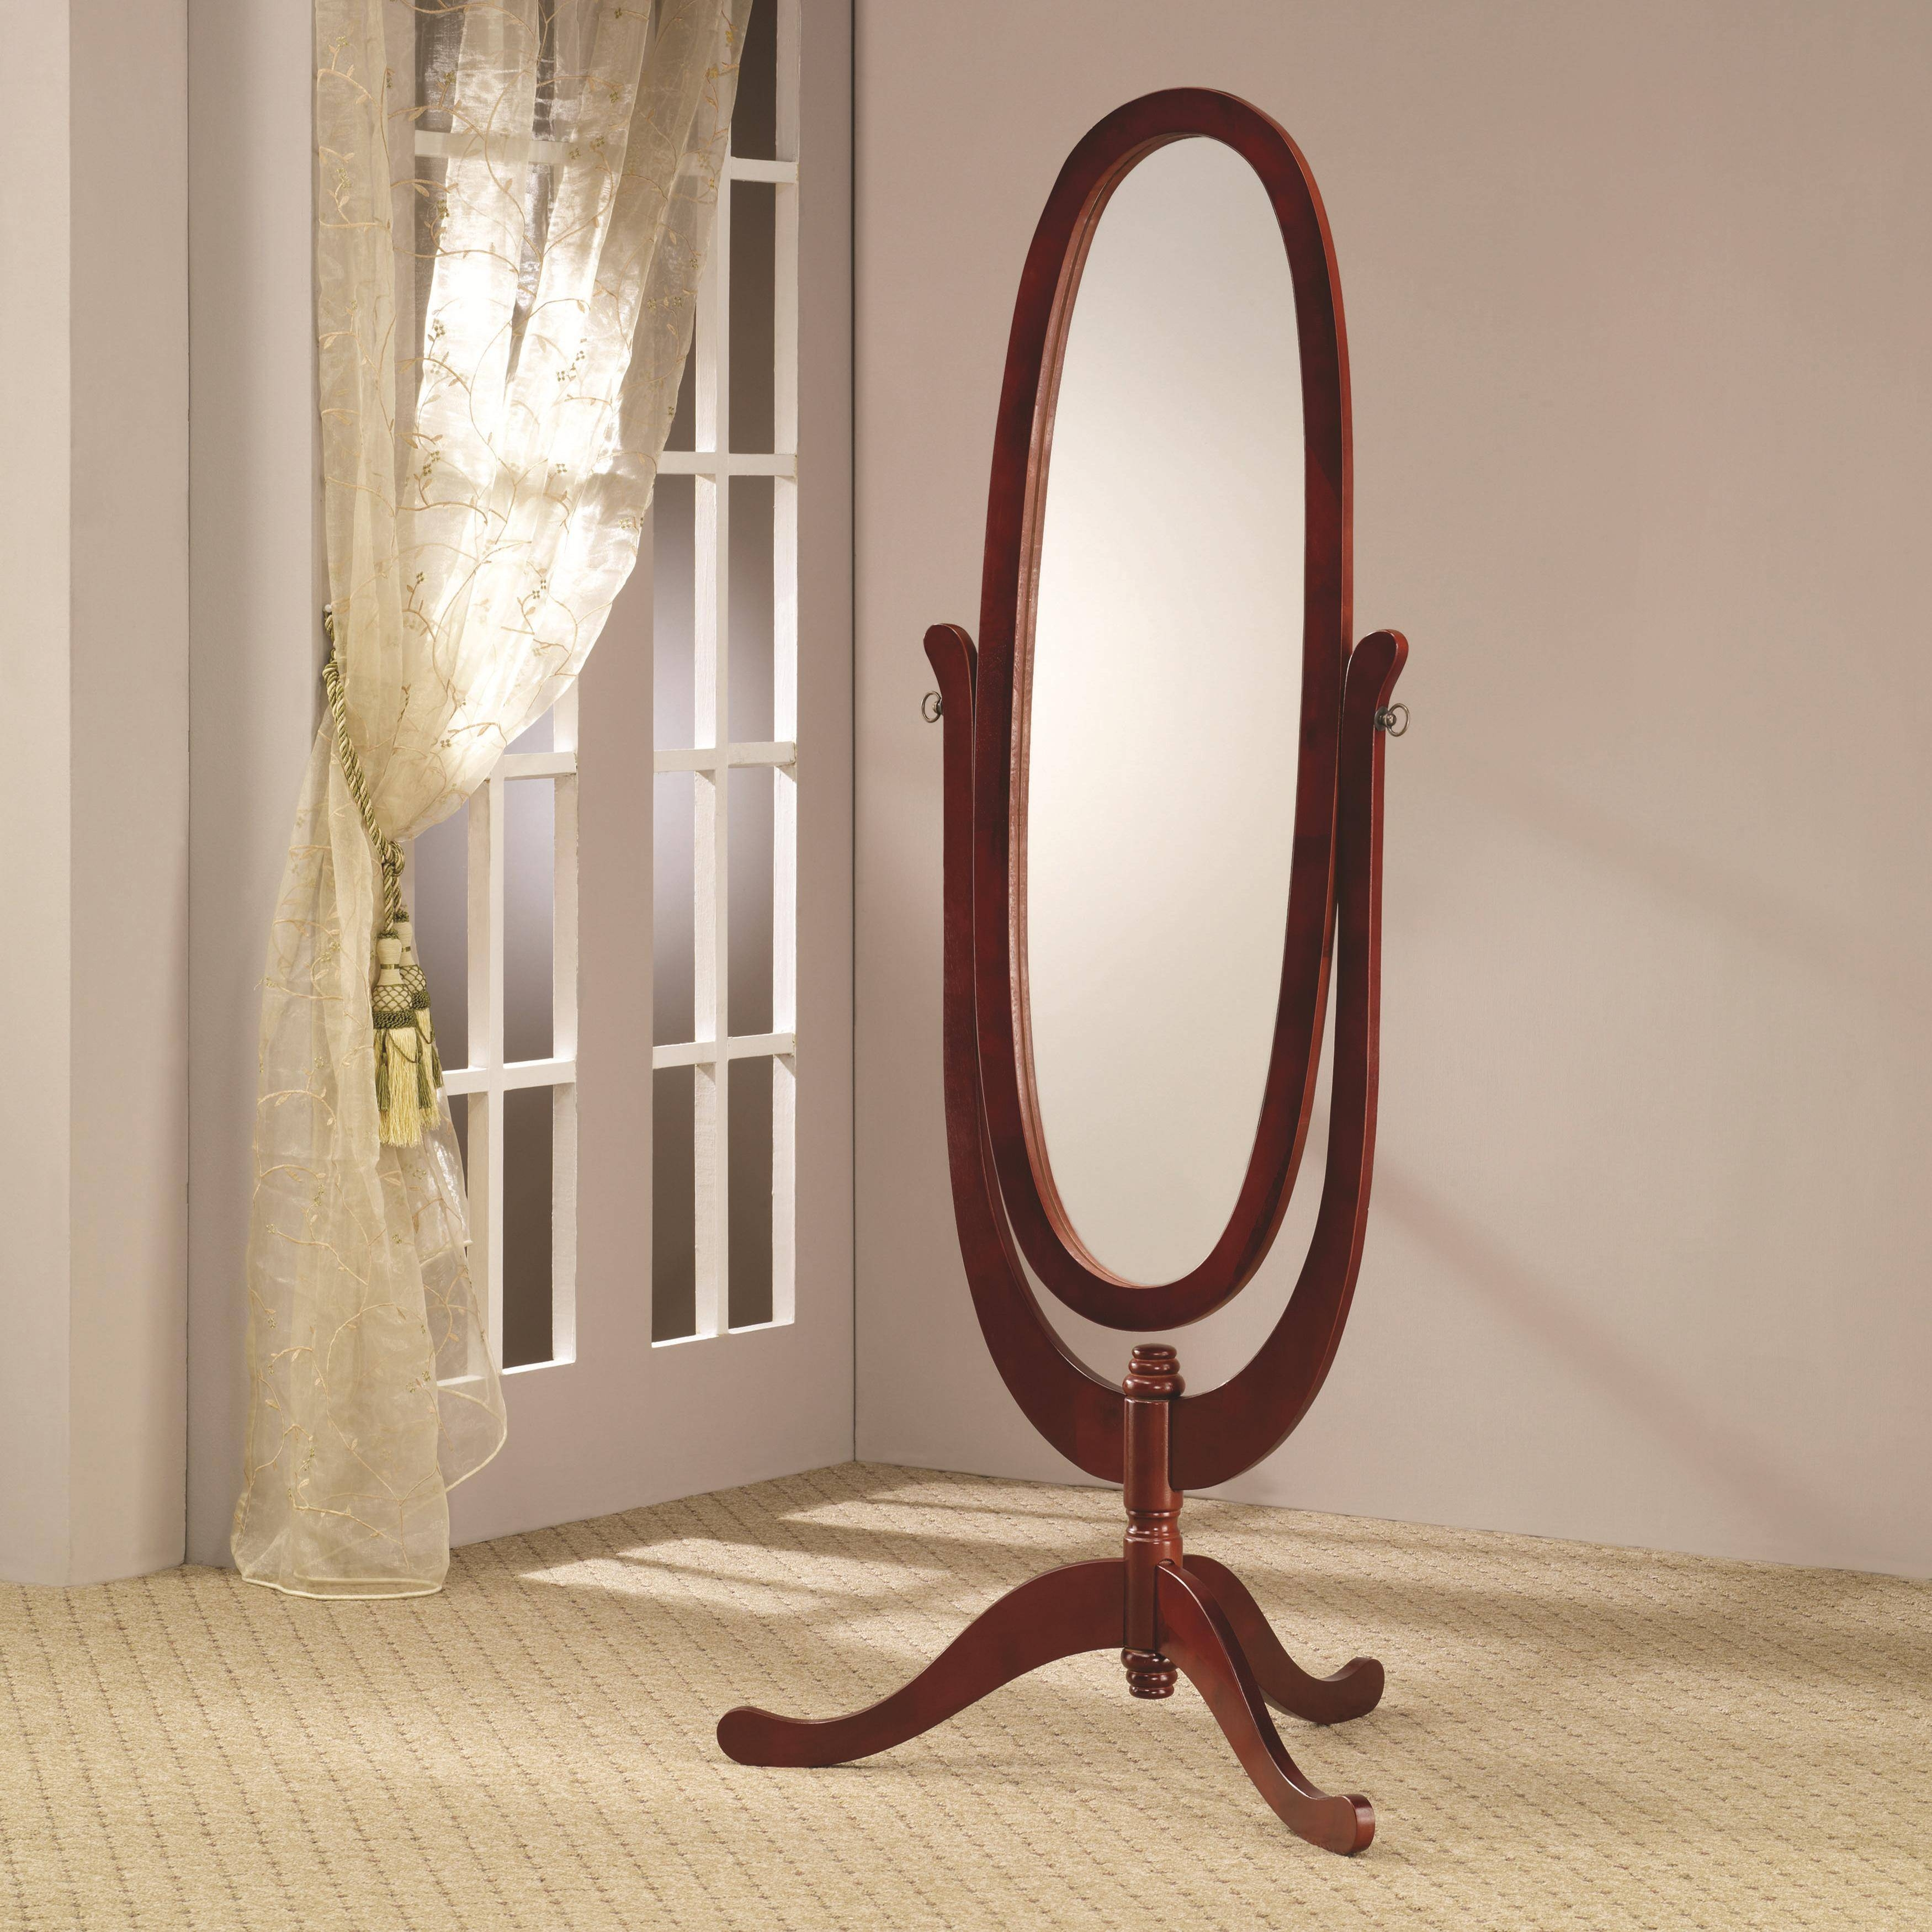 Decorating: Oak Cheval Mirror With 3 Legs For Home Accessories Ideas With Free Standing Oak Mirrors (View 12 of 15)